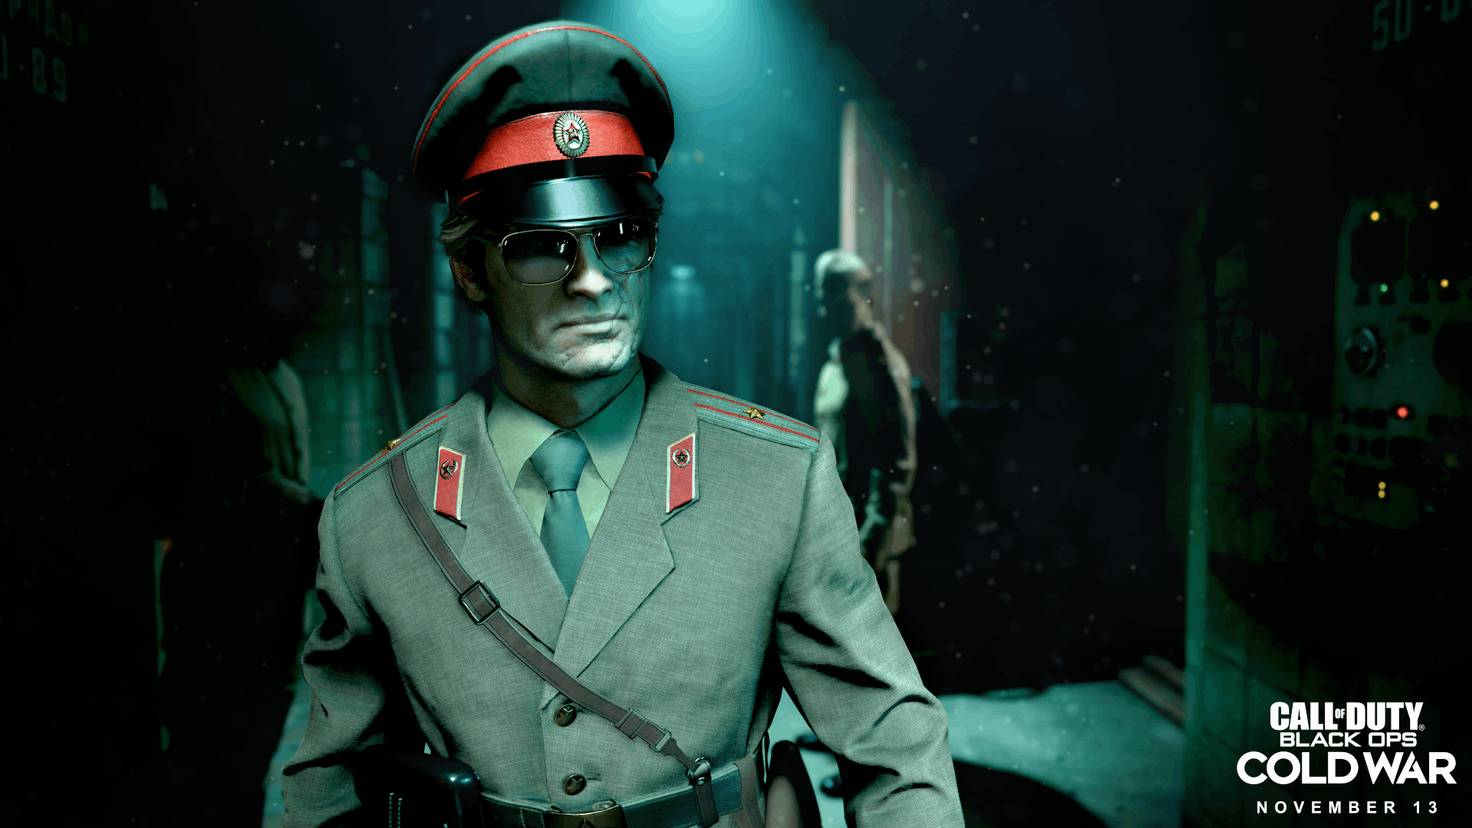 call-of-duty-black-ops-cold-war-general